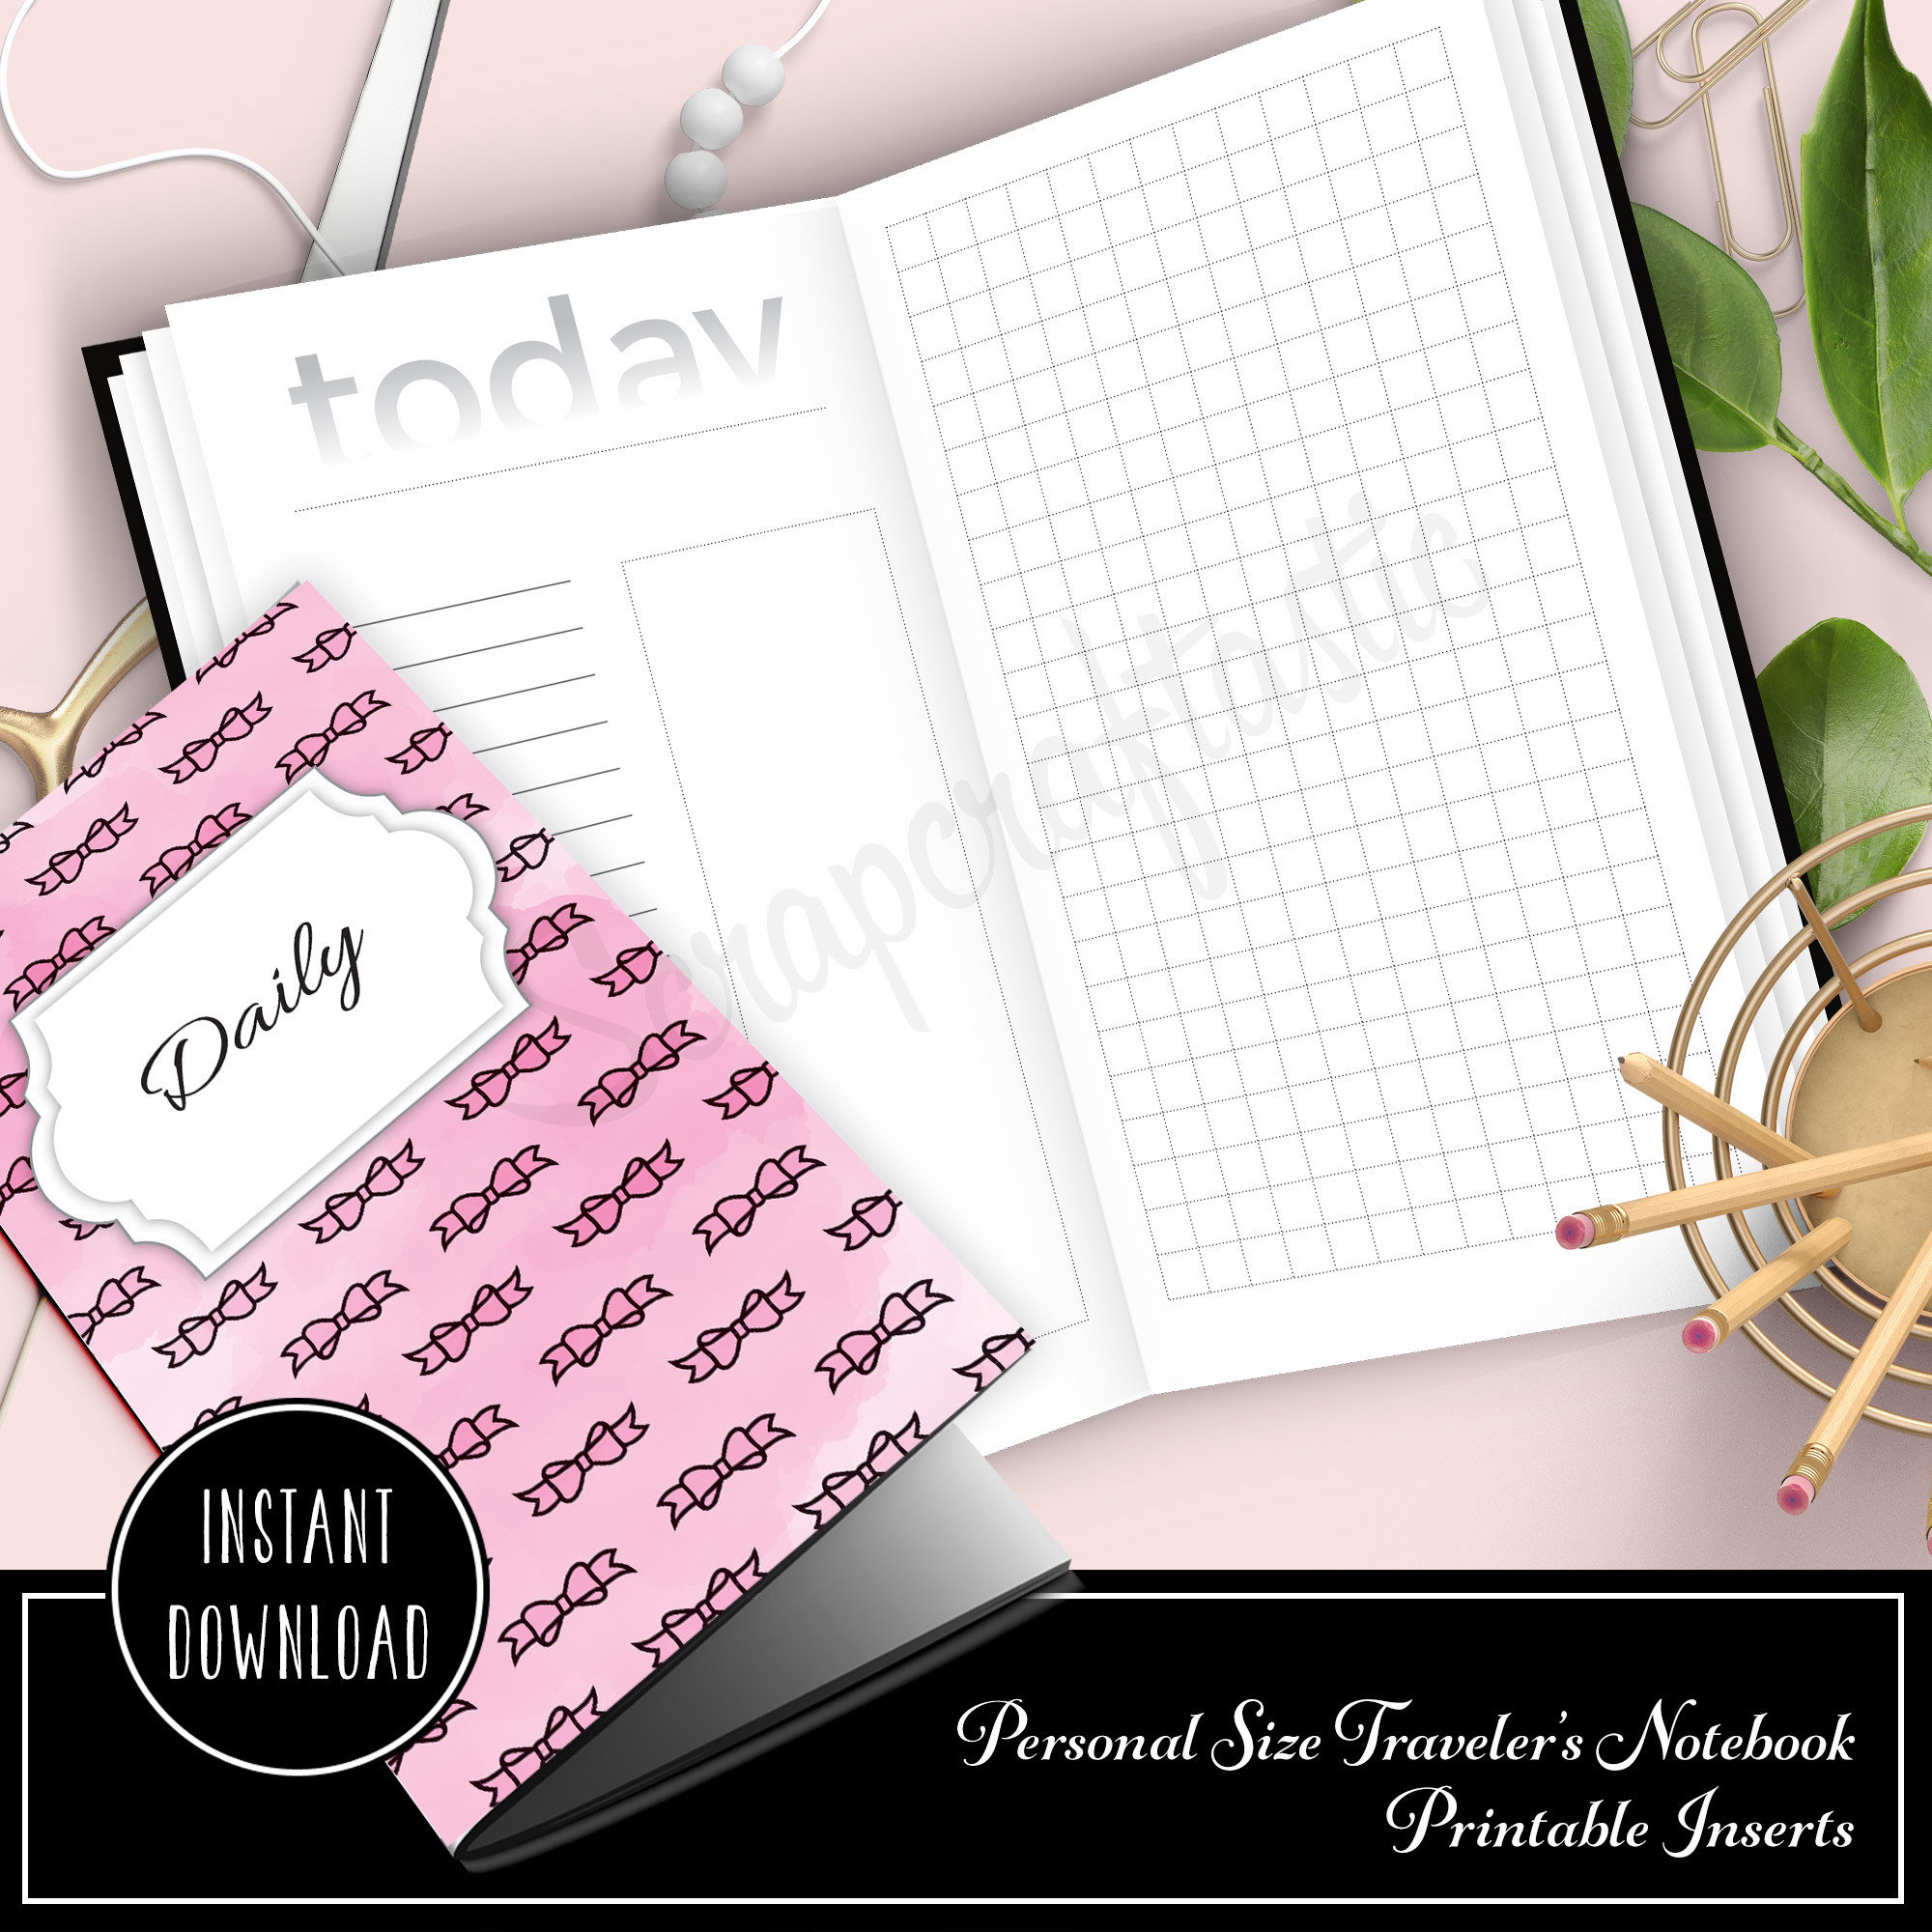 Daily Lists, Column and Grid Personal Size Traveler's Notebook Printable Inserts 09013